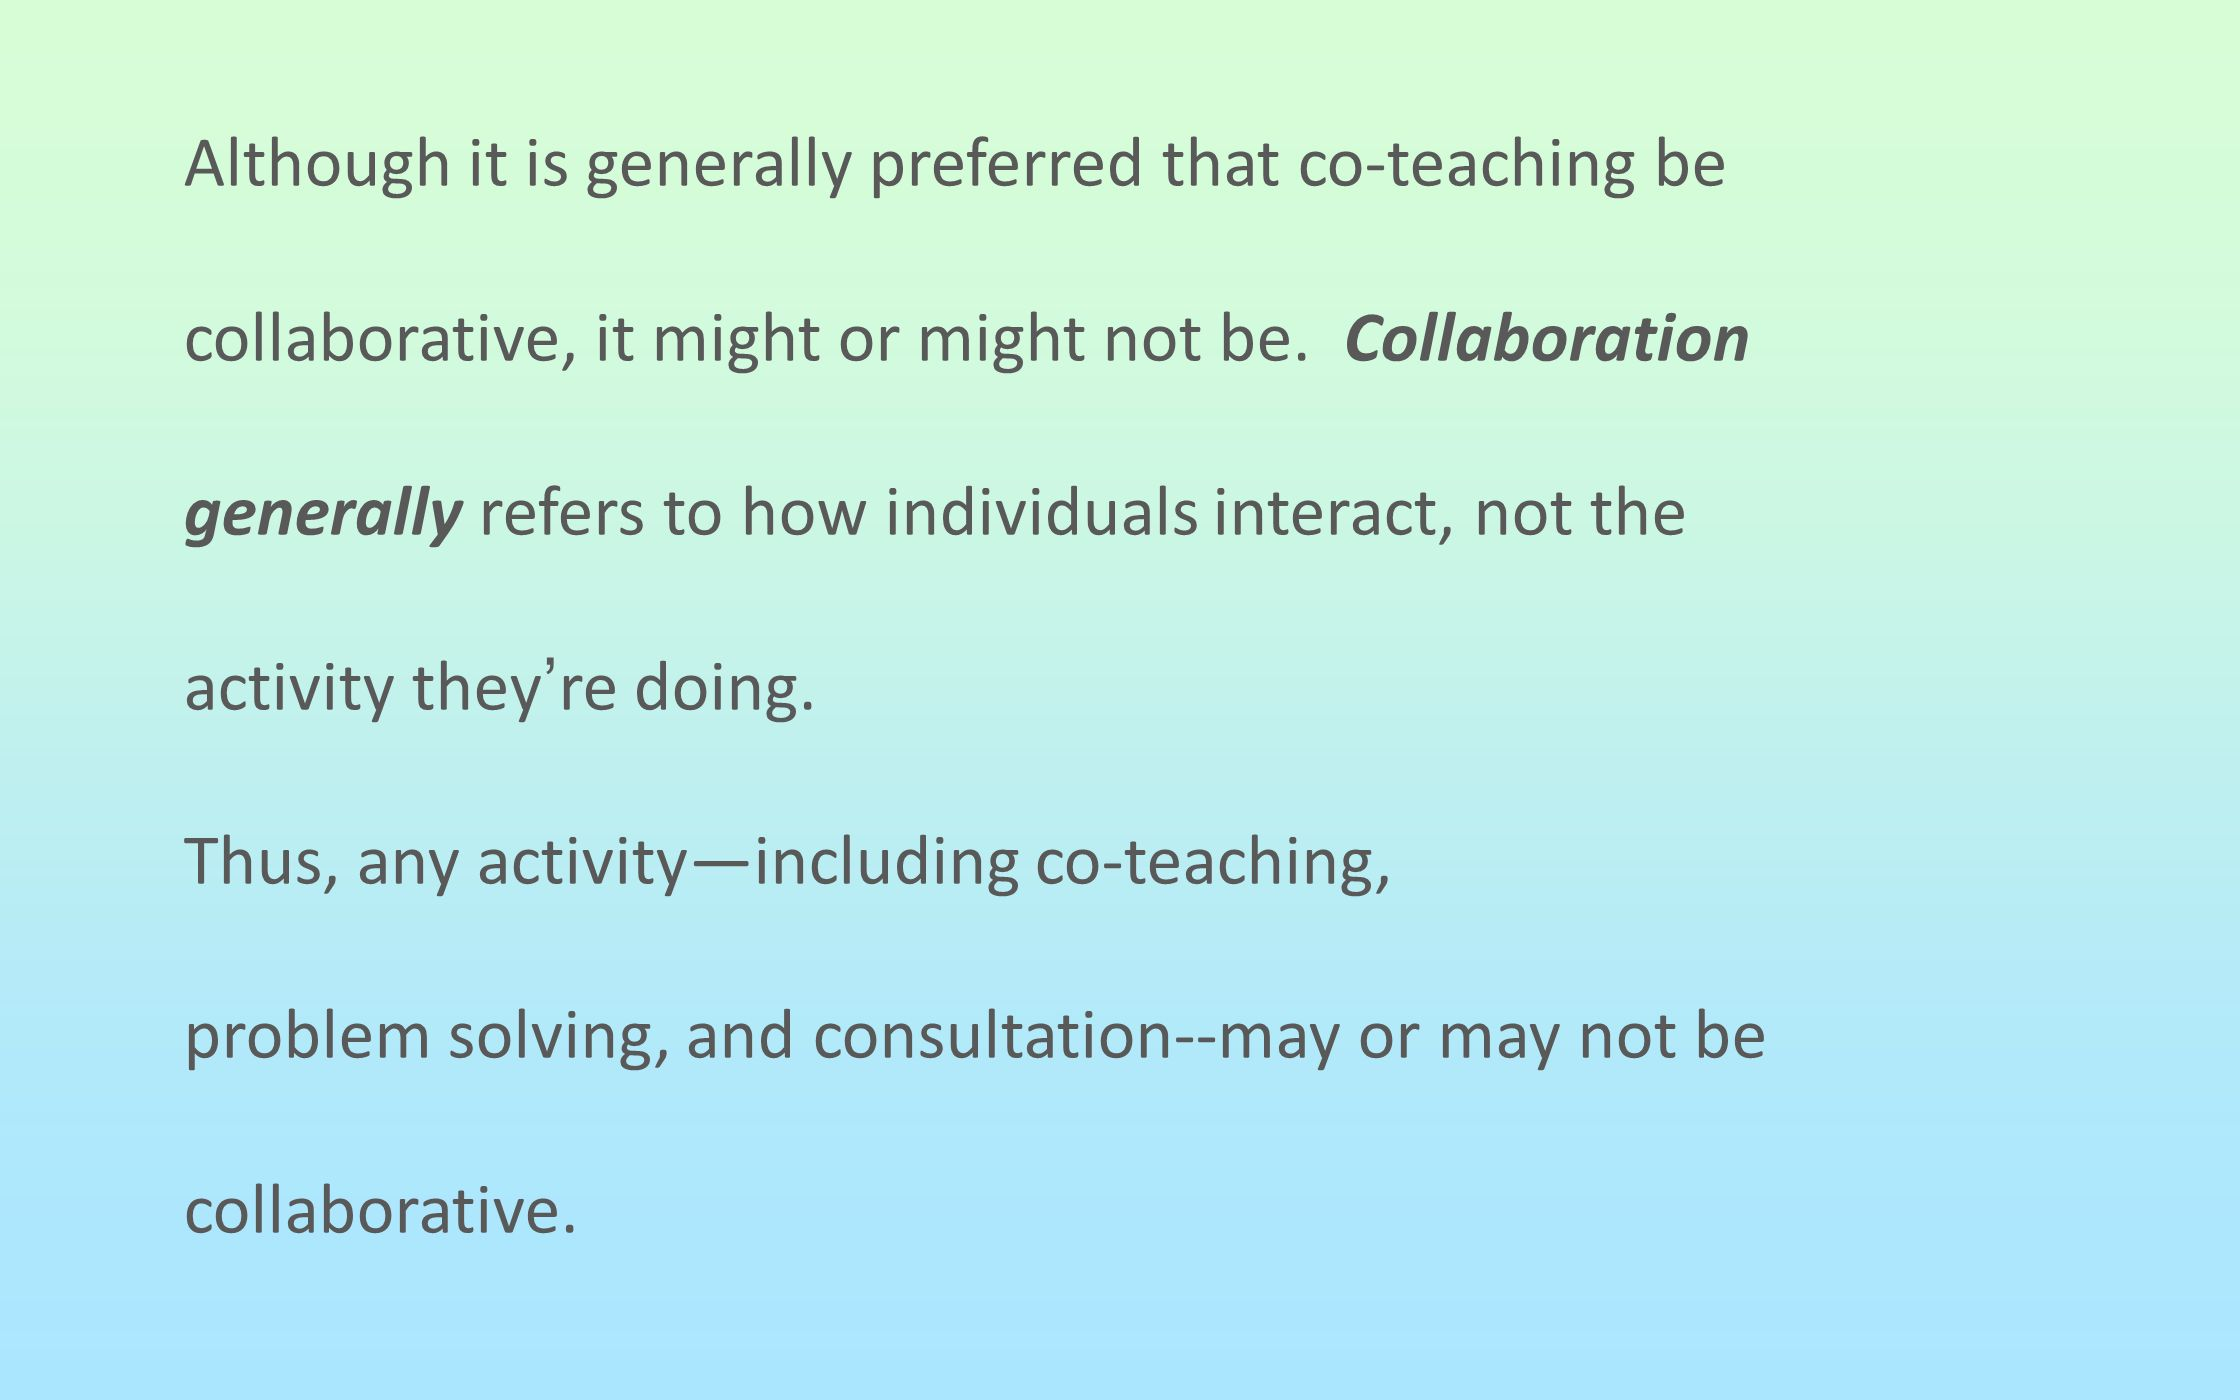 Although it is generally preferred that co-teaching be collaborative, it might or might not be.